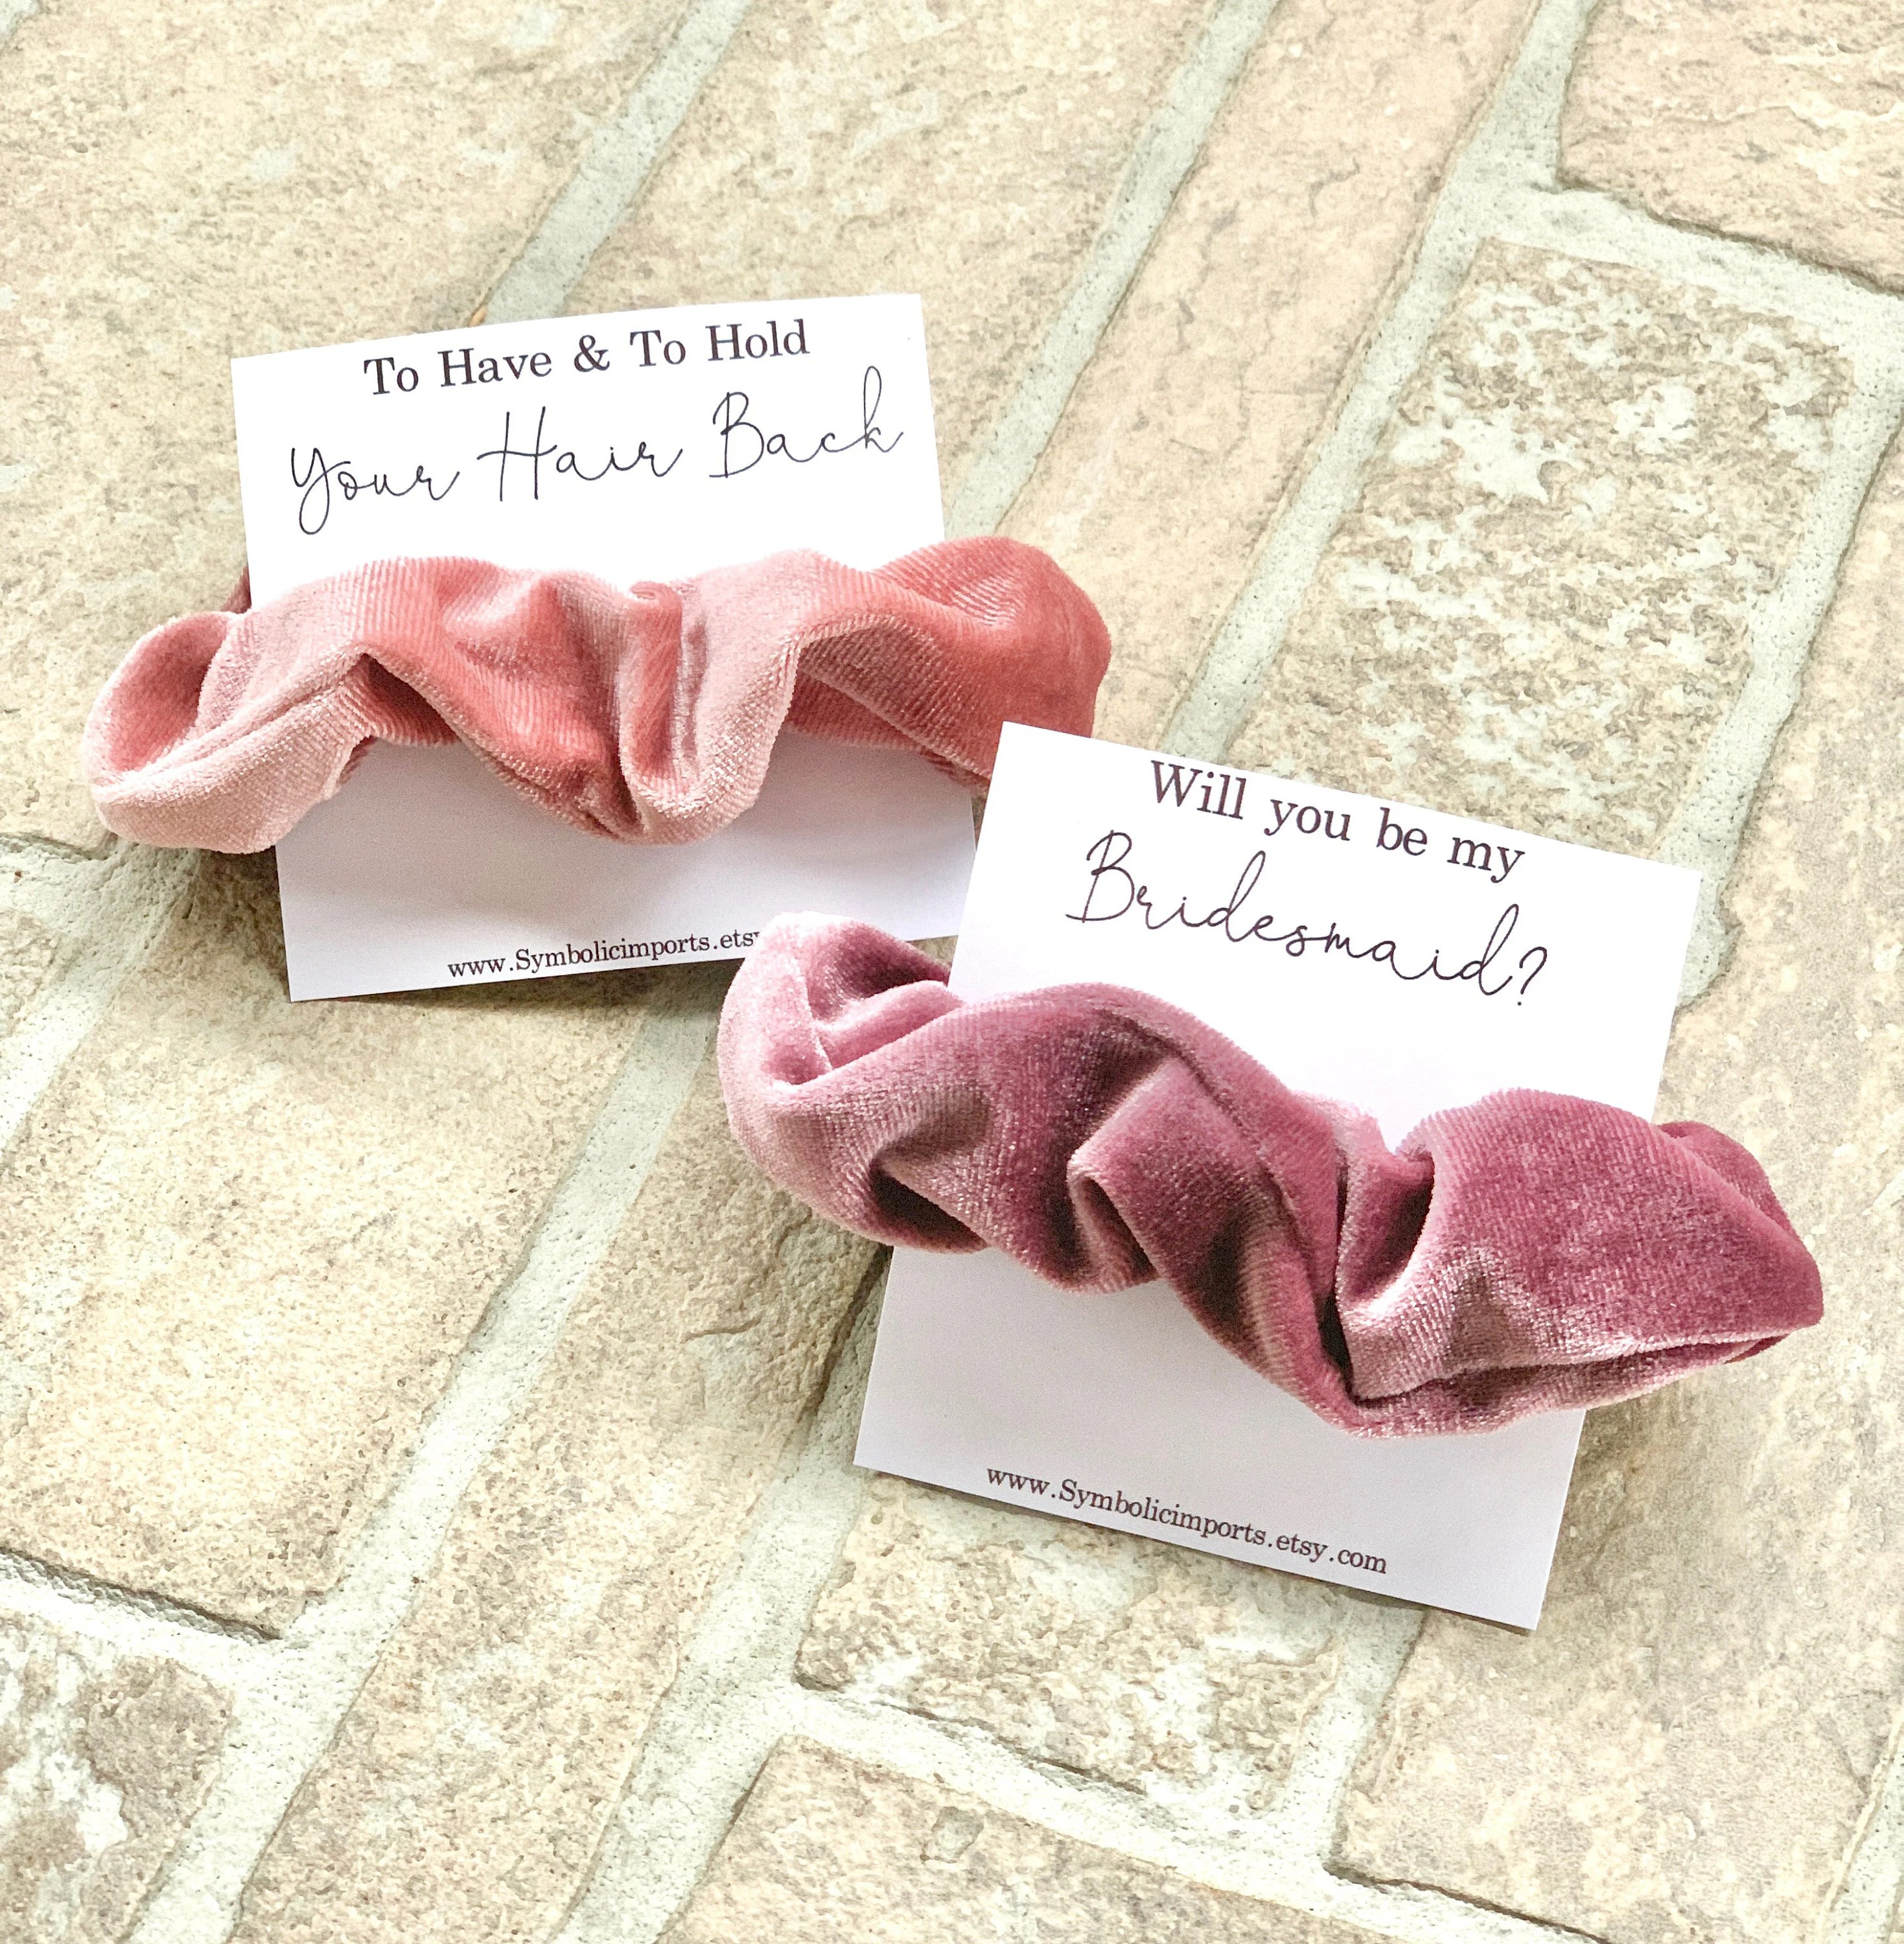 qqqqAqqqqdqq                                                                                                                                                                                    Scrunchie Hair Tie Bridesmaid Gift | Blush Pink, Rose Gold Hair Tie Favors, Bridesmaid Proposal Gift, Wedding Party Bridesmaid Hair Ties                                                                    SymbolicImports                               5 out of 5 stars                                                                                                                                                                                                                                                          (15,529)                                                      CA$5.18                                                              Bestseller